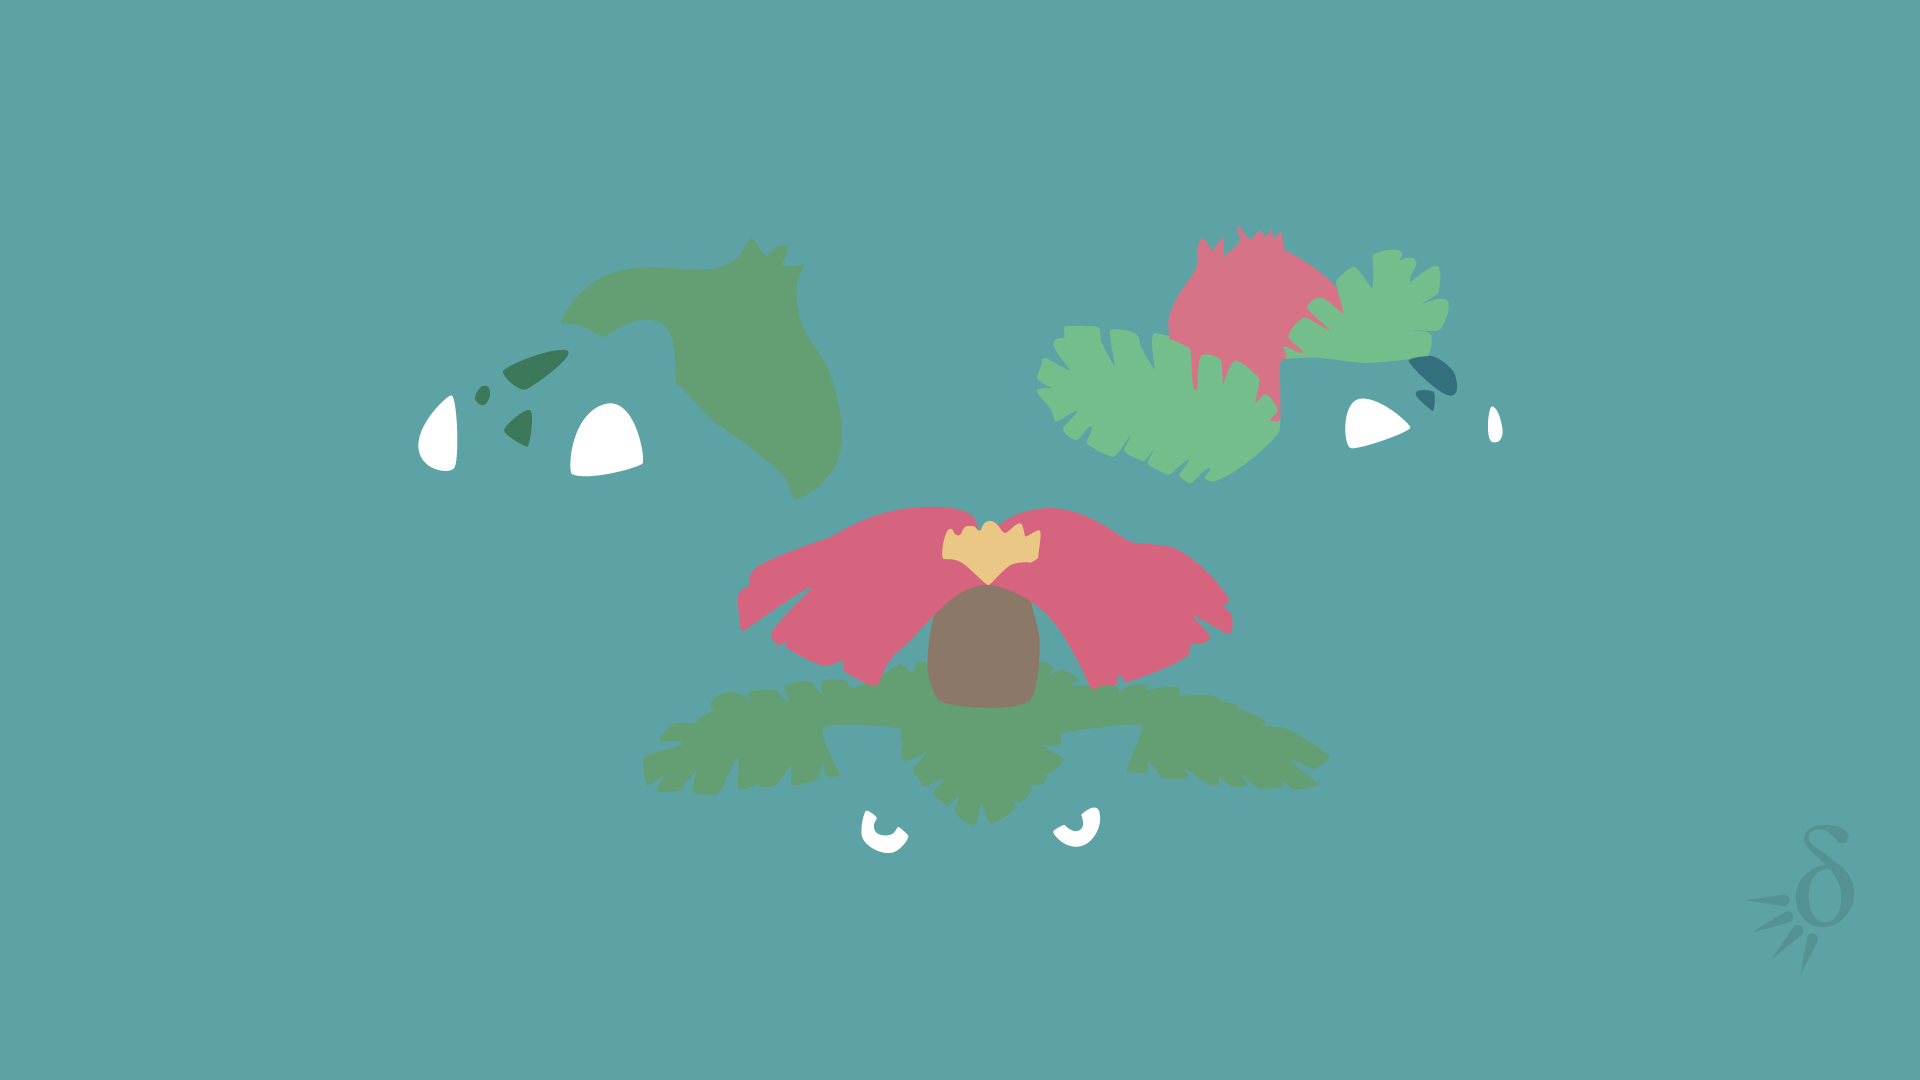 Bulbasaur Minimalist Ivysaur | Collection 10+ Wallpapers